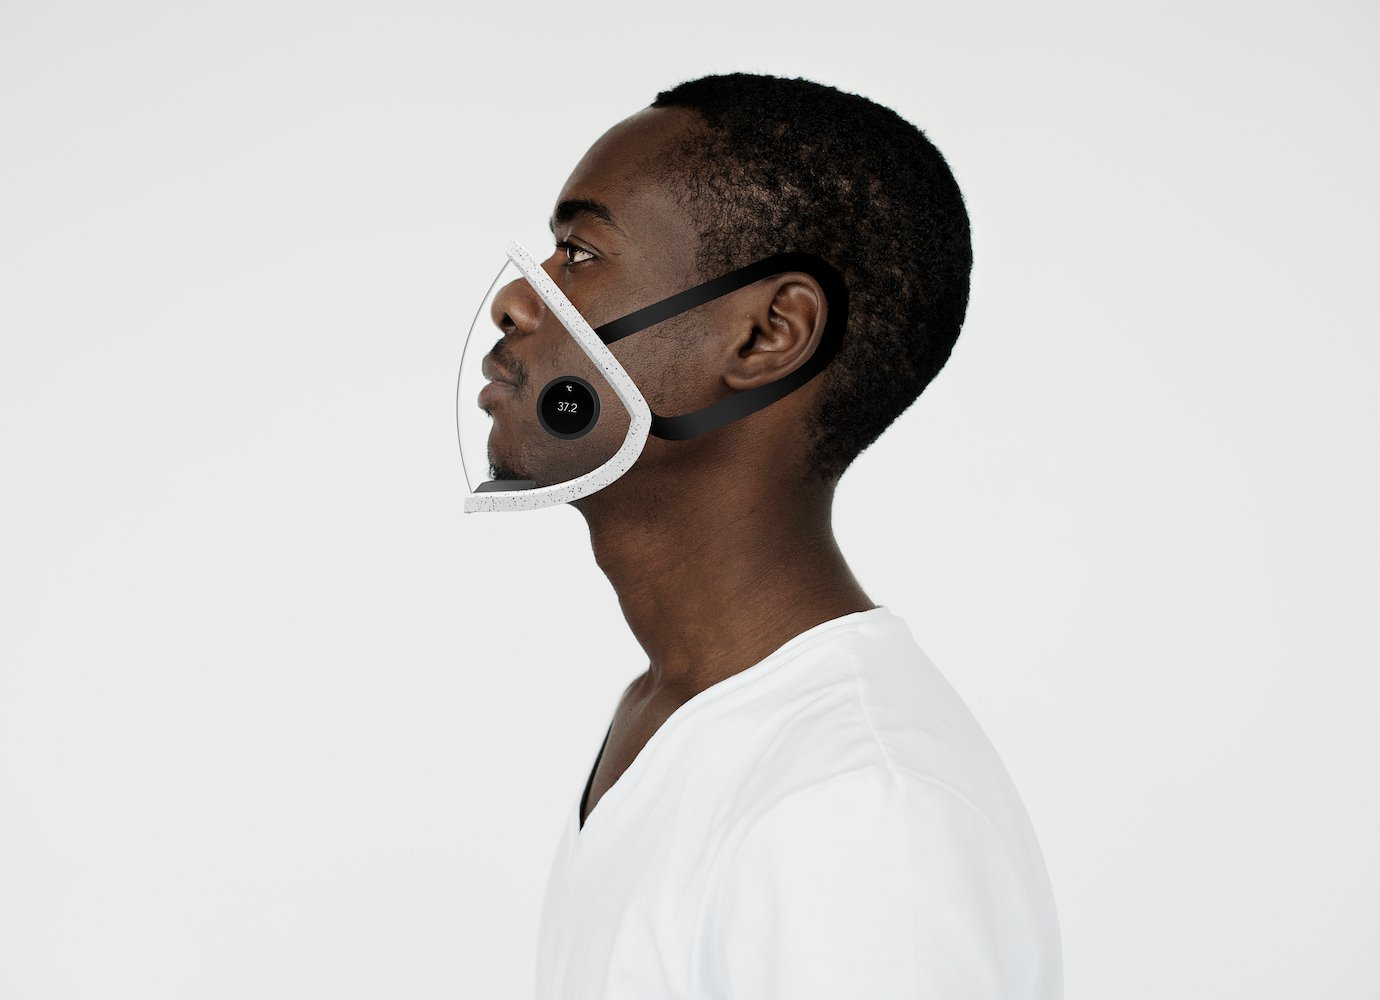 Romanian Designer Wins Mit Prize For High Tech Face Mask Prototype The Calvert Journal